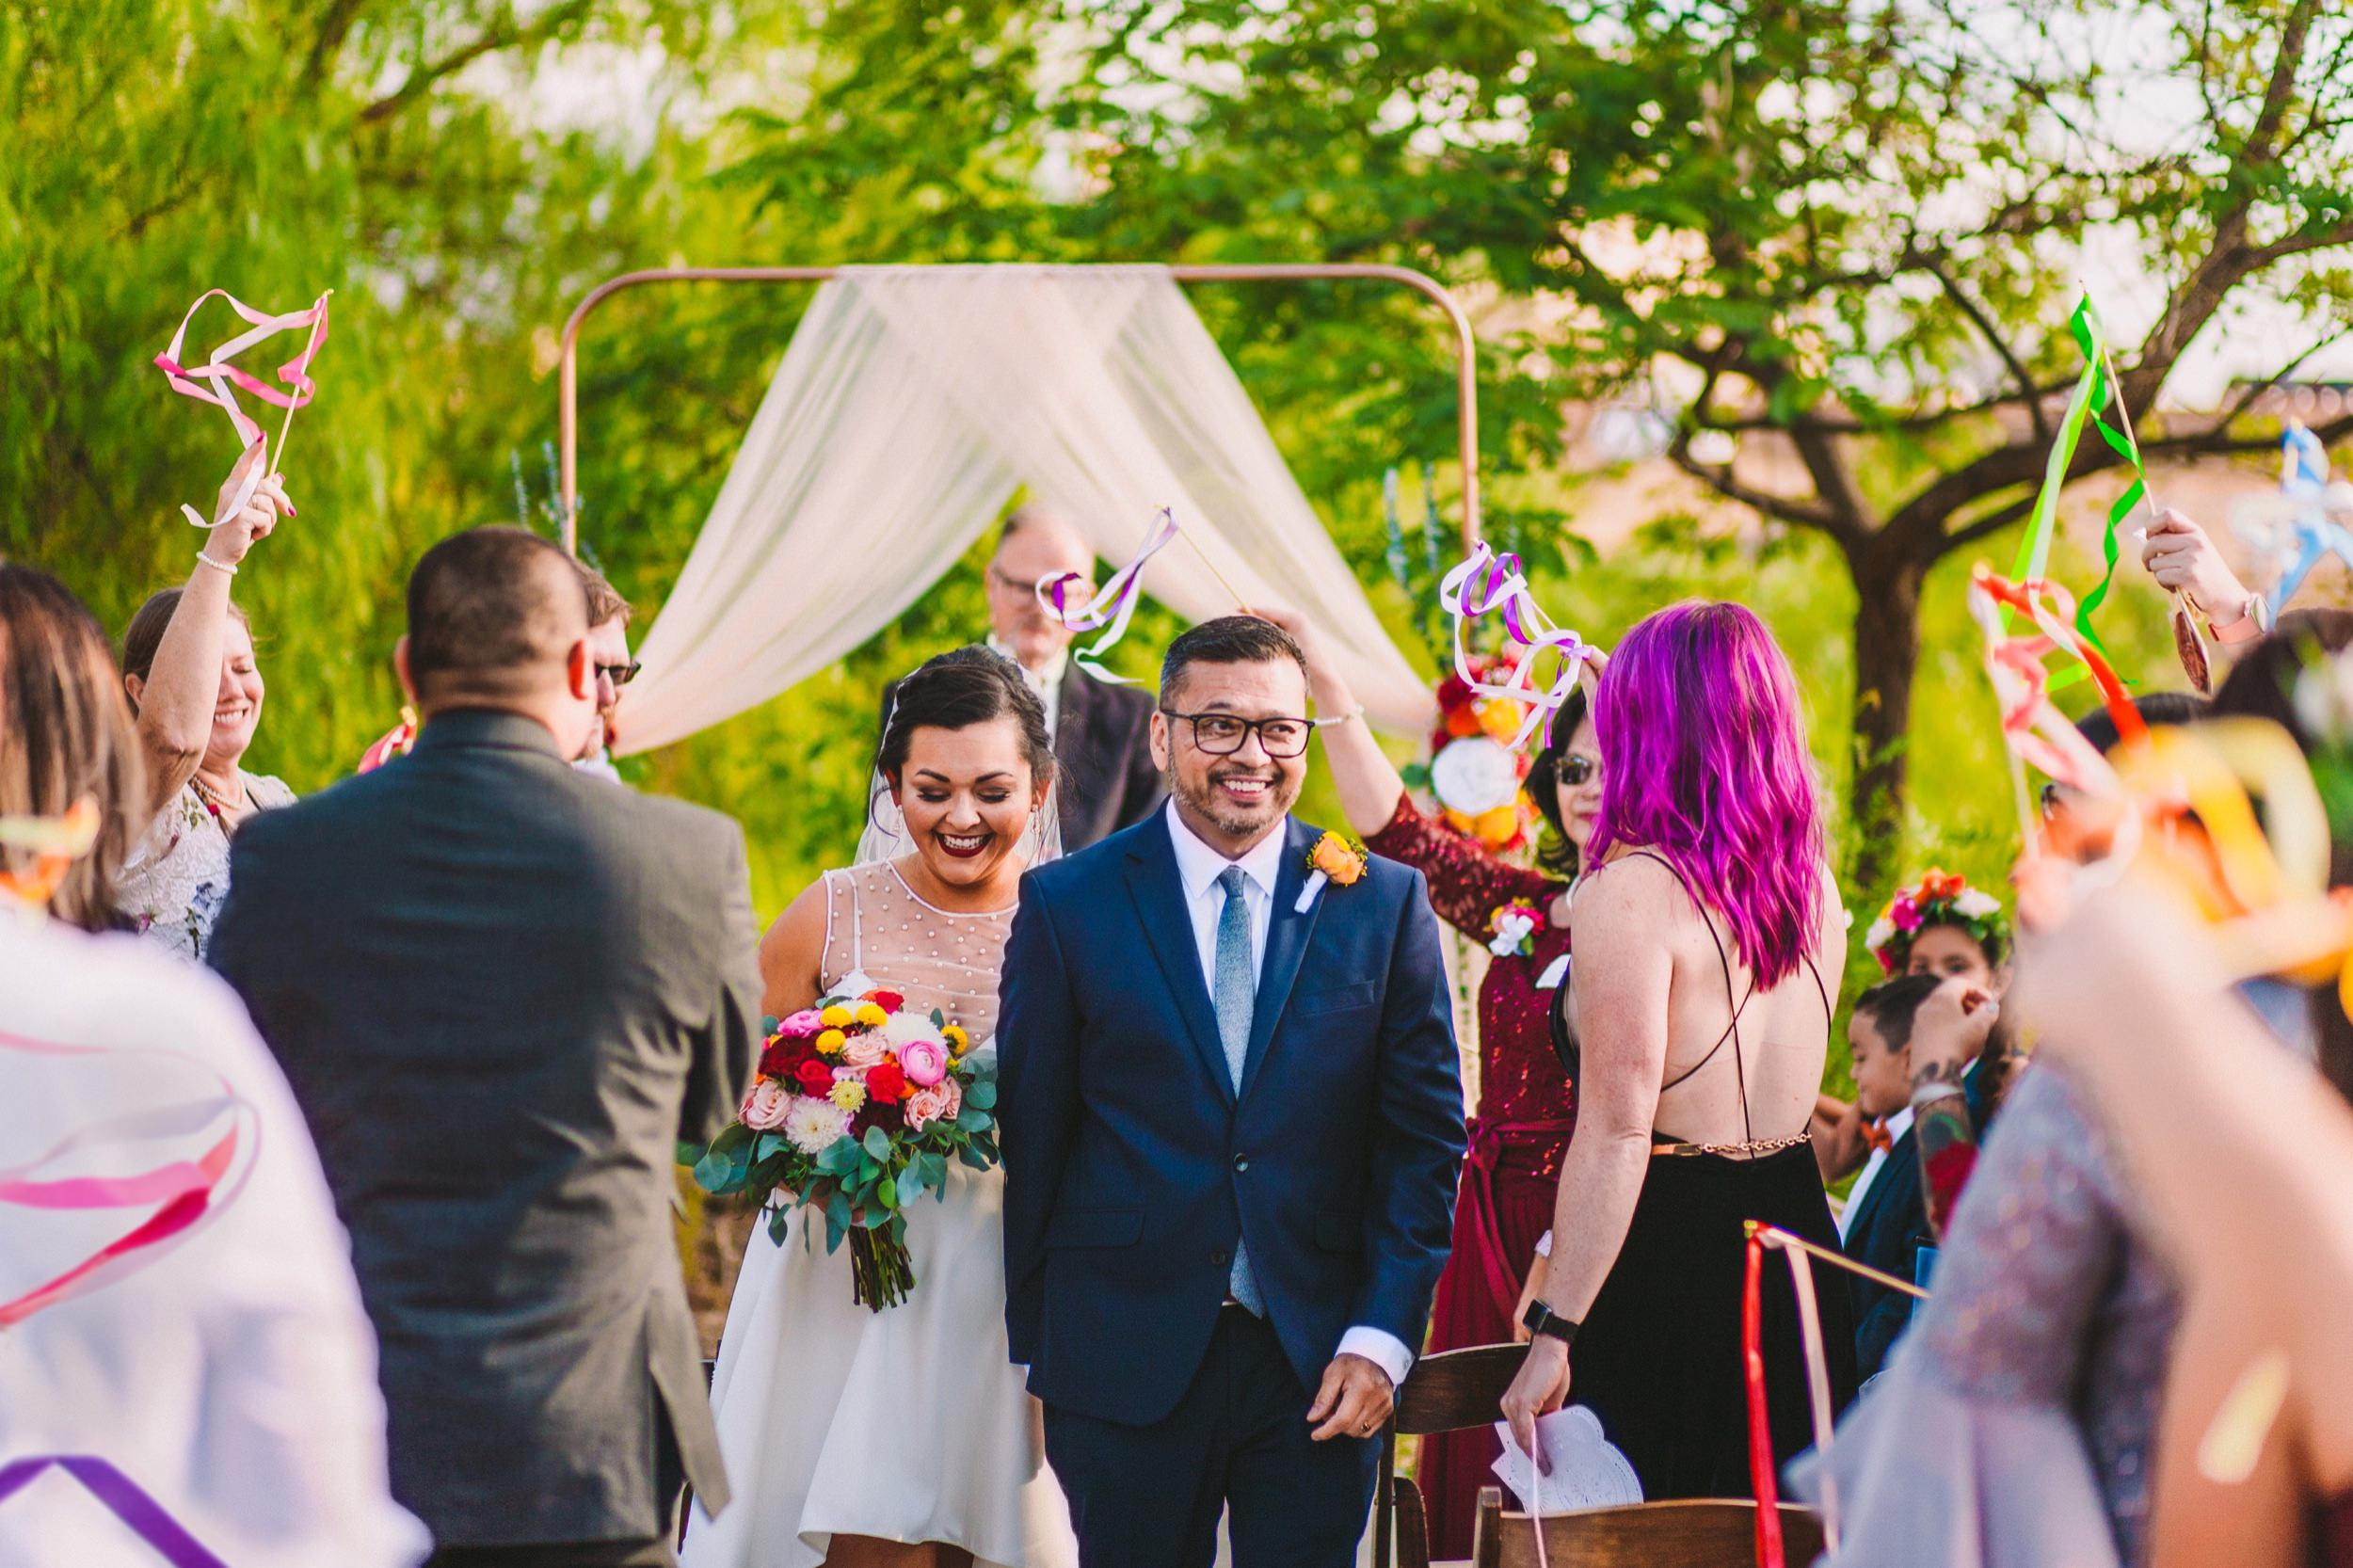 Joyful Wedding Ceremony Exit with Colorful Ribbon Wands